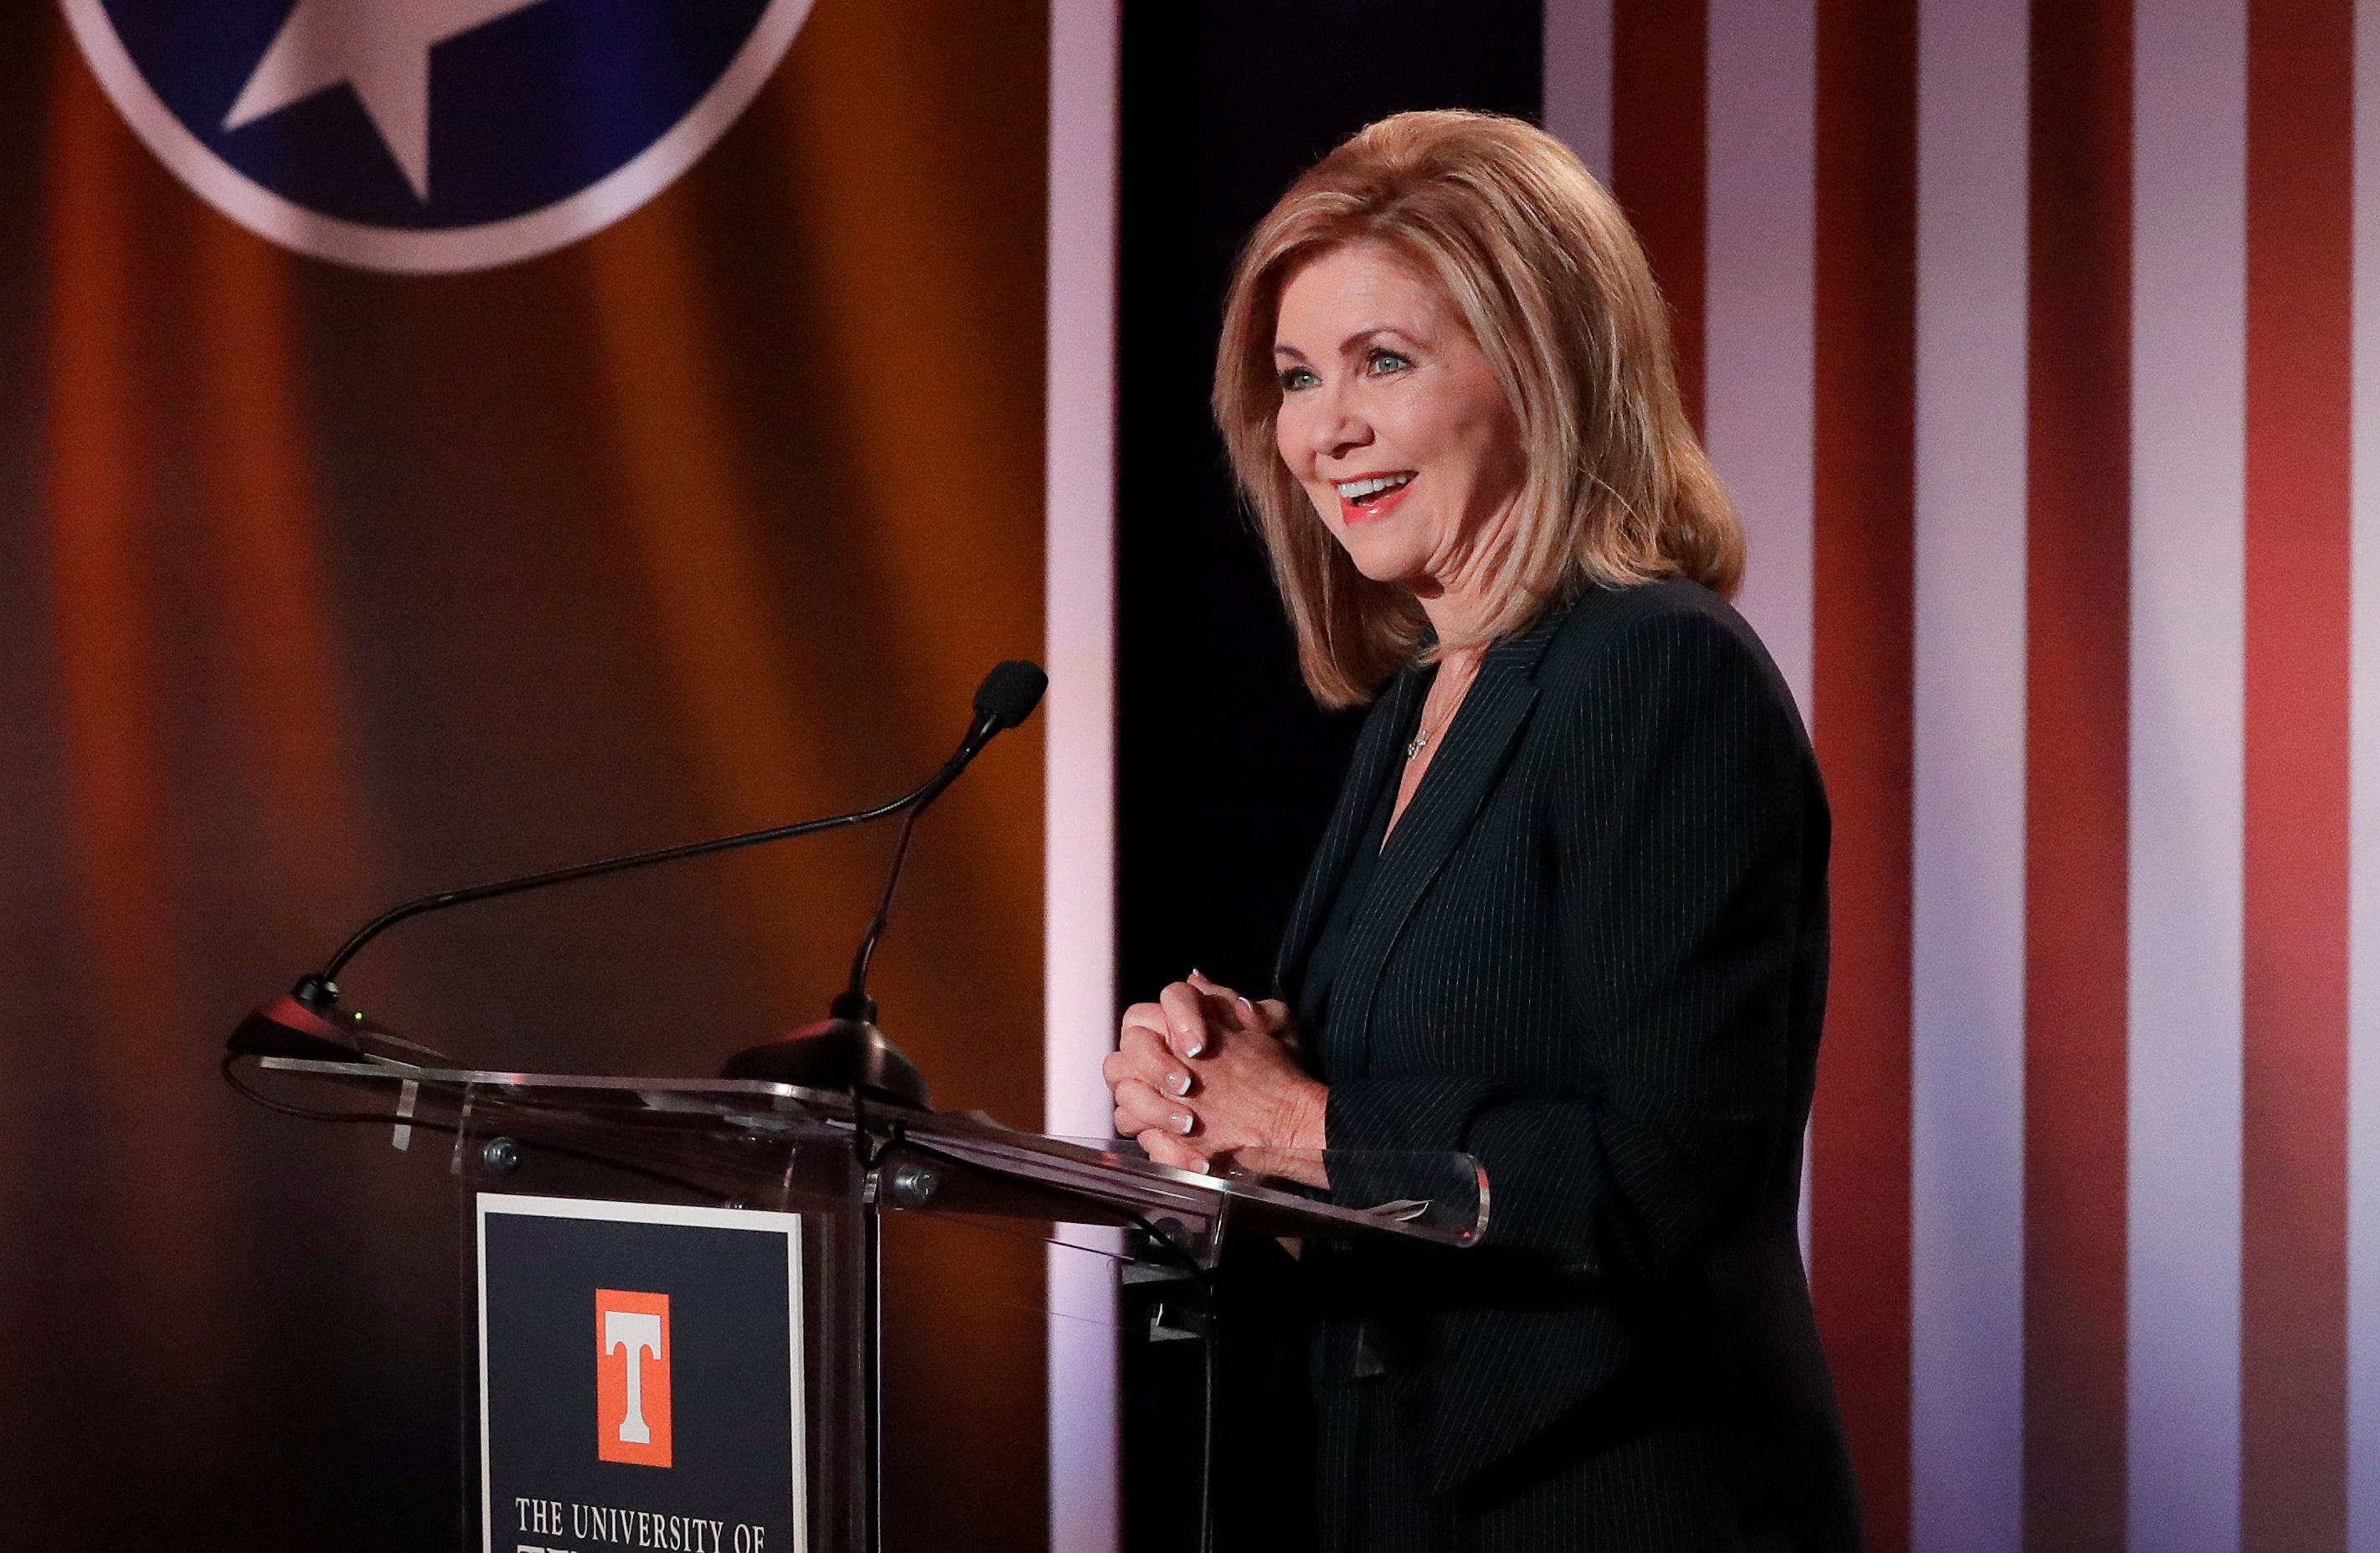 Republican U.S. Rep. Marsha Blackburn speaks during the 2018 Tennessee U.S. Senate Debate at The University of Tennessee Wednesday, Oct. 10, 2018, in Knoxville, Tenn. (AP Photo/Mark Humphrey)